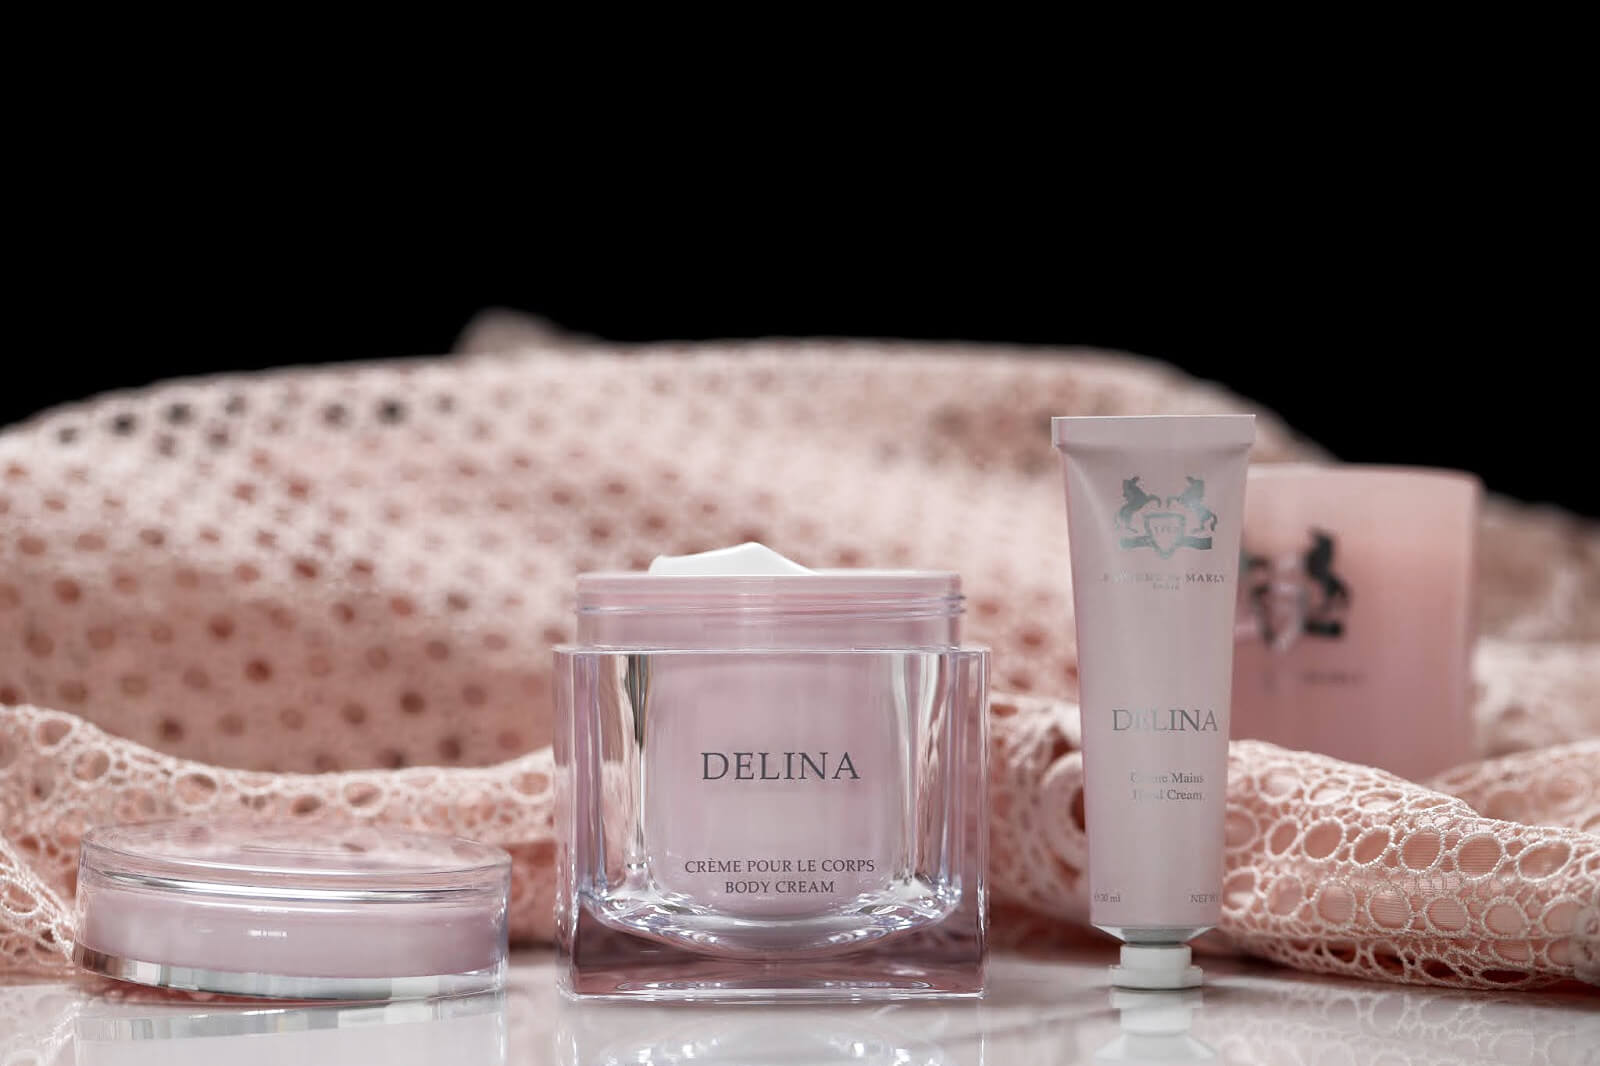 Delina Parfums de Marly Soins Corps Bougie test